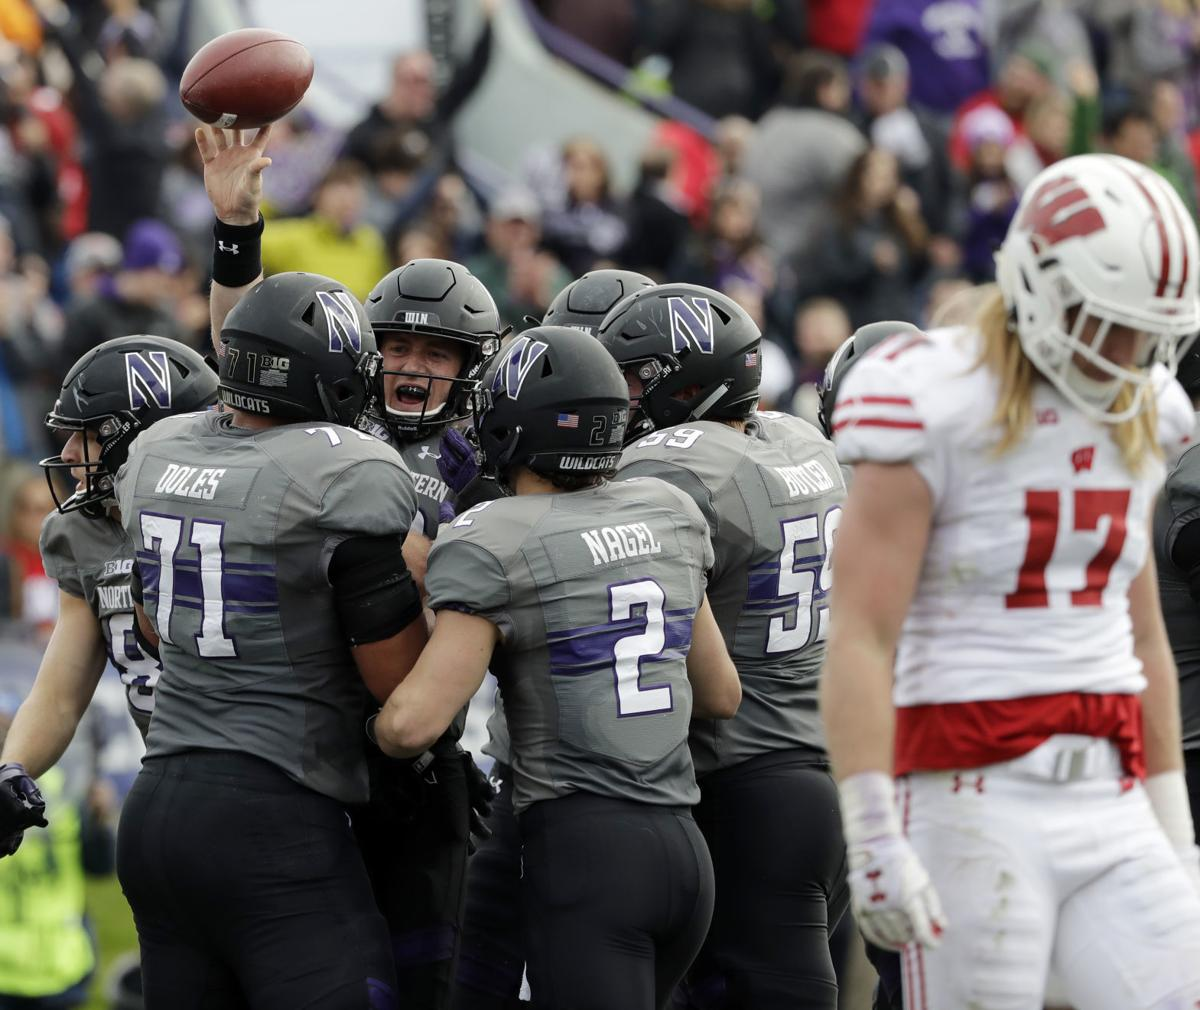 Crowded field chases Big Ten West title | Hawkmaina ...